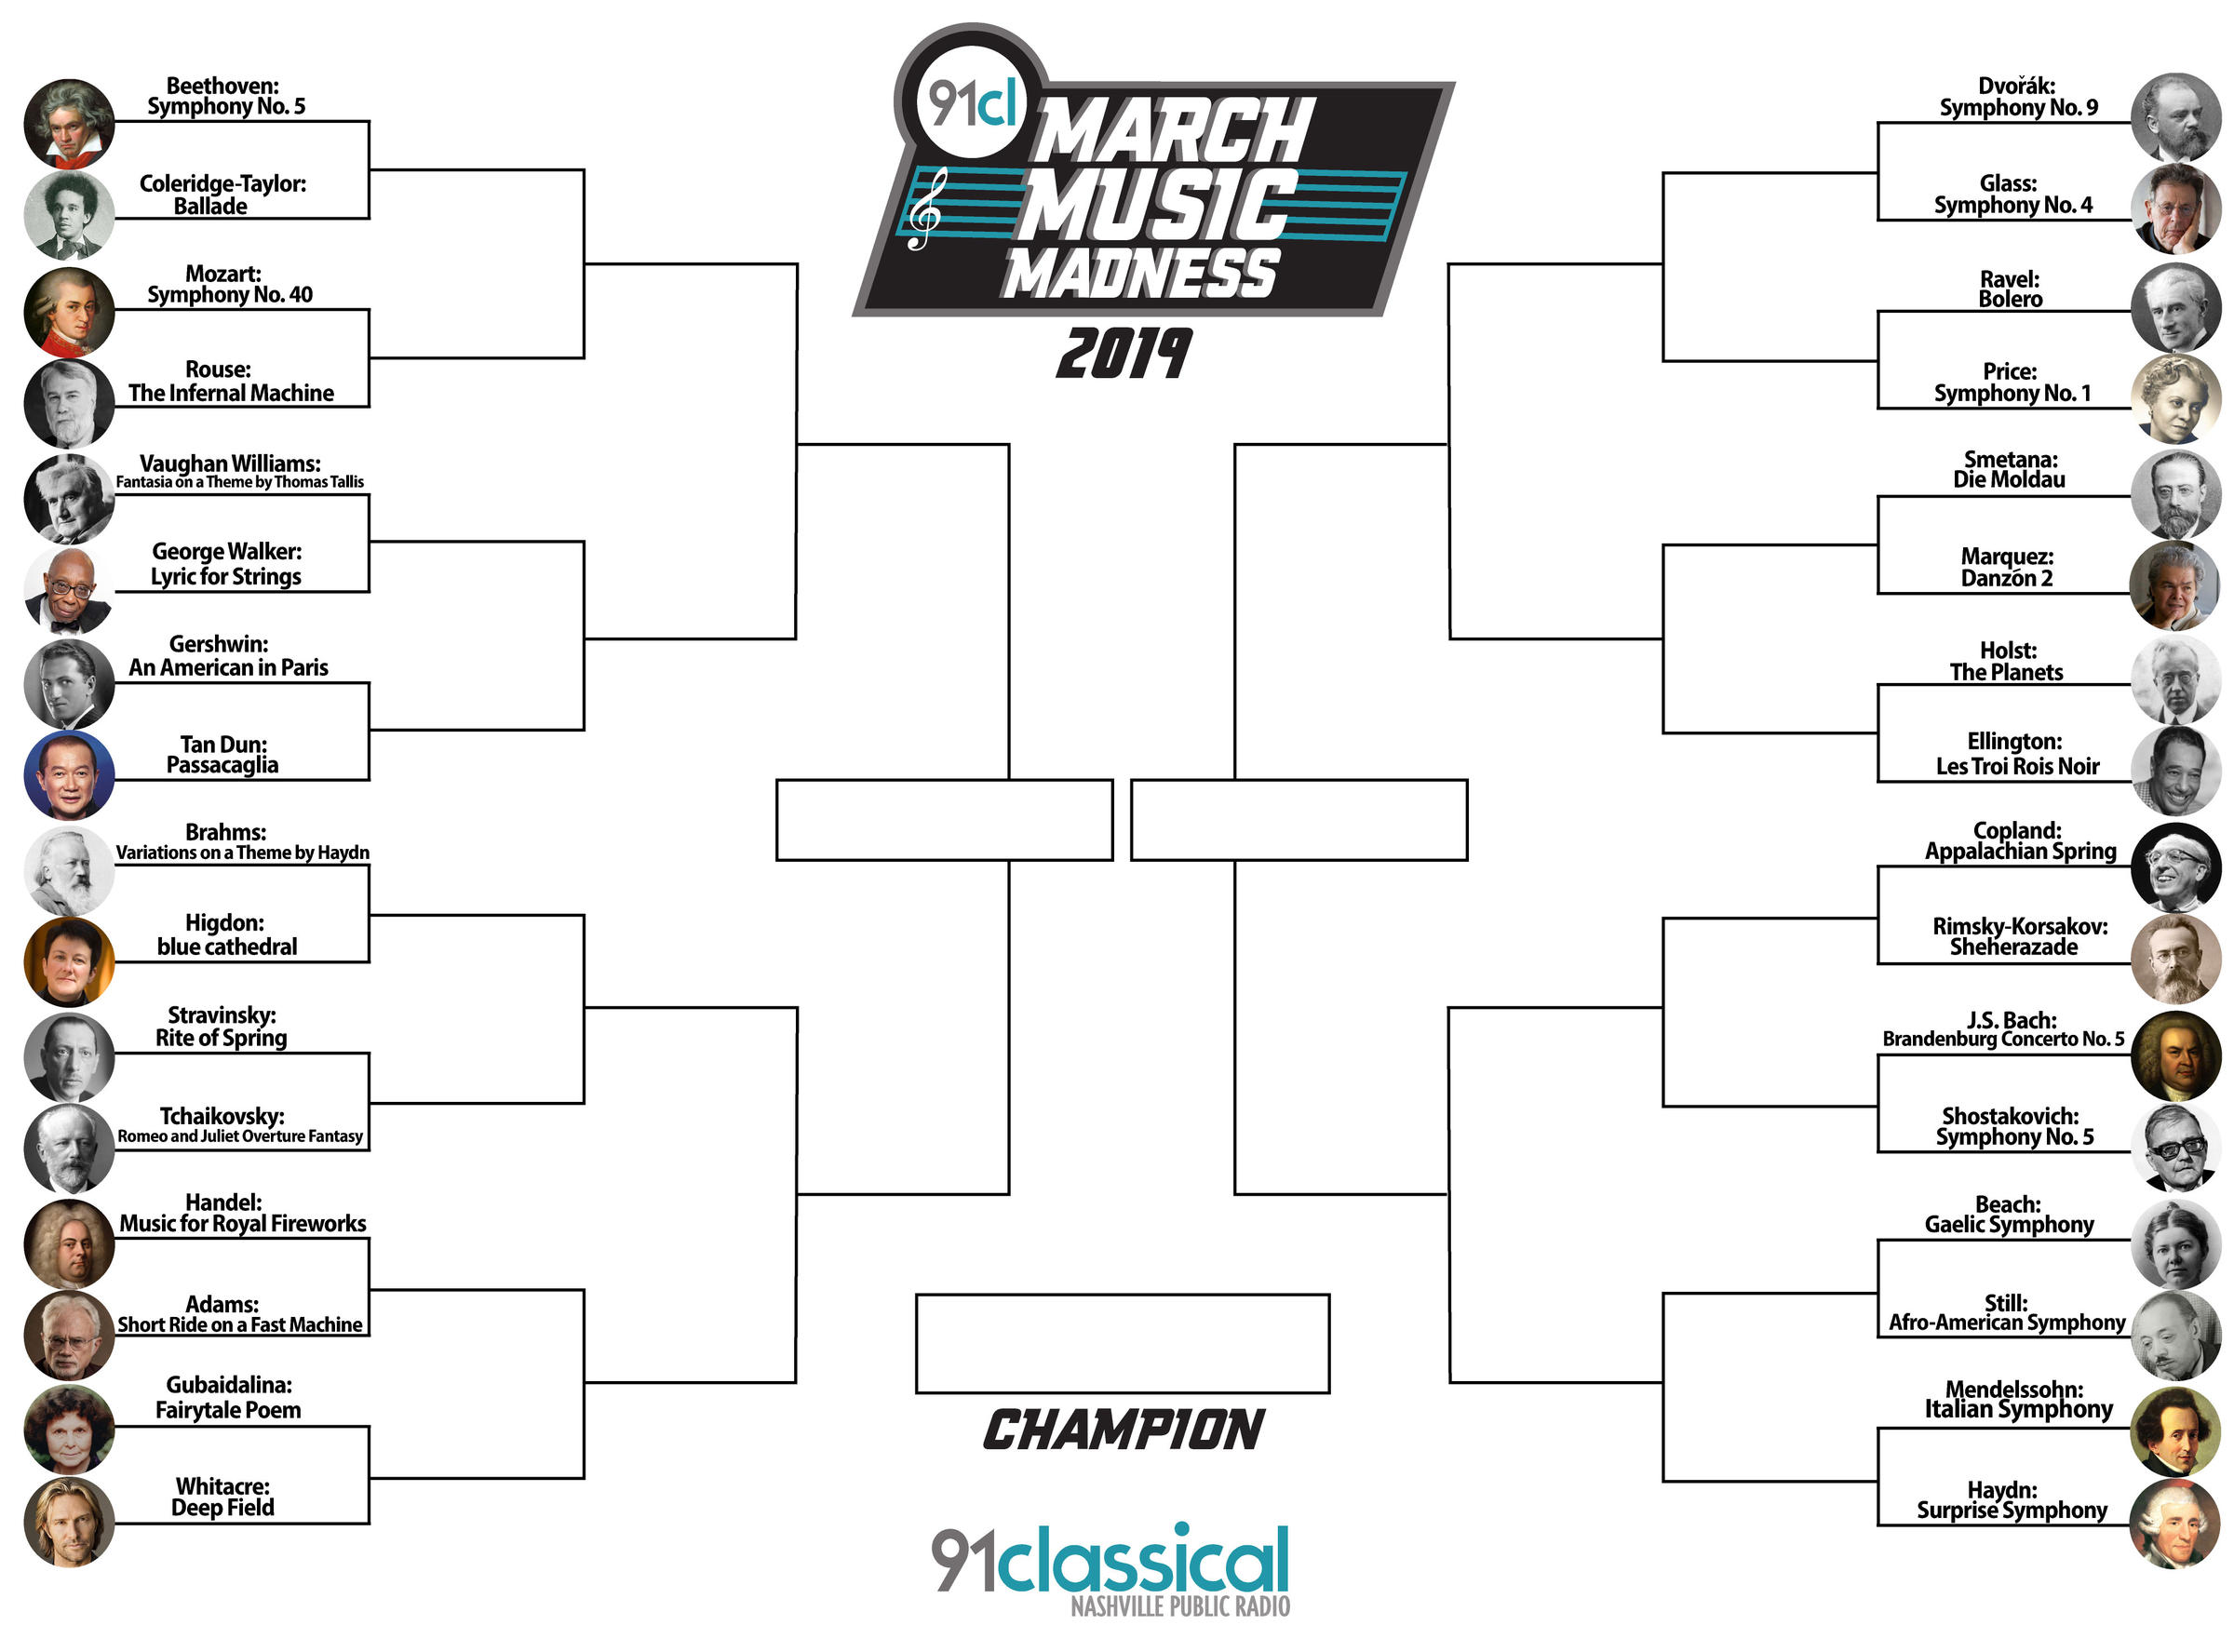 March Music Madness 2019: Round 1 Voting